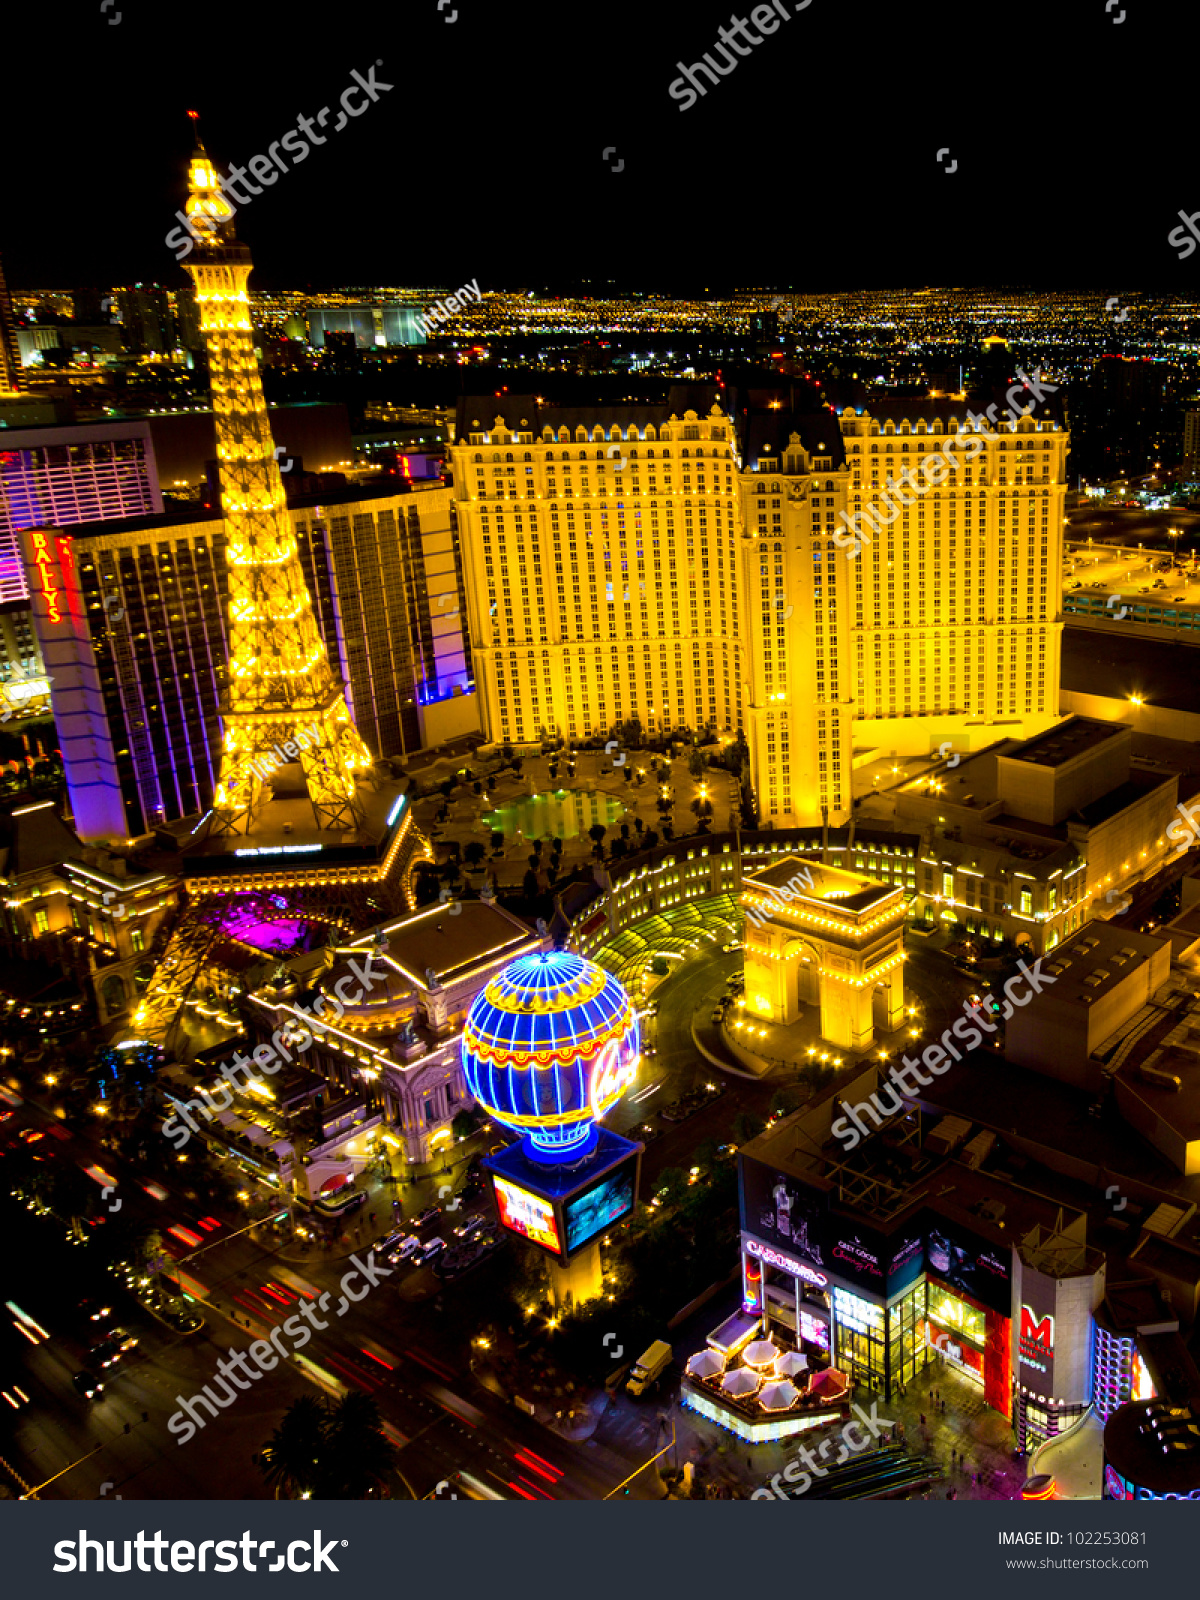 That largest casinos on vegas strip share